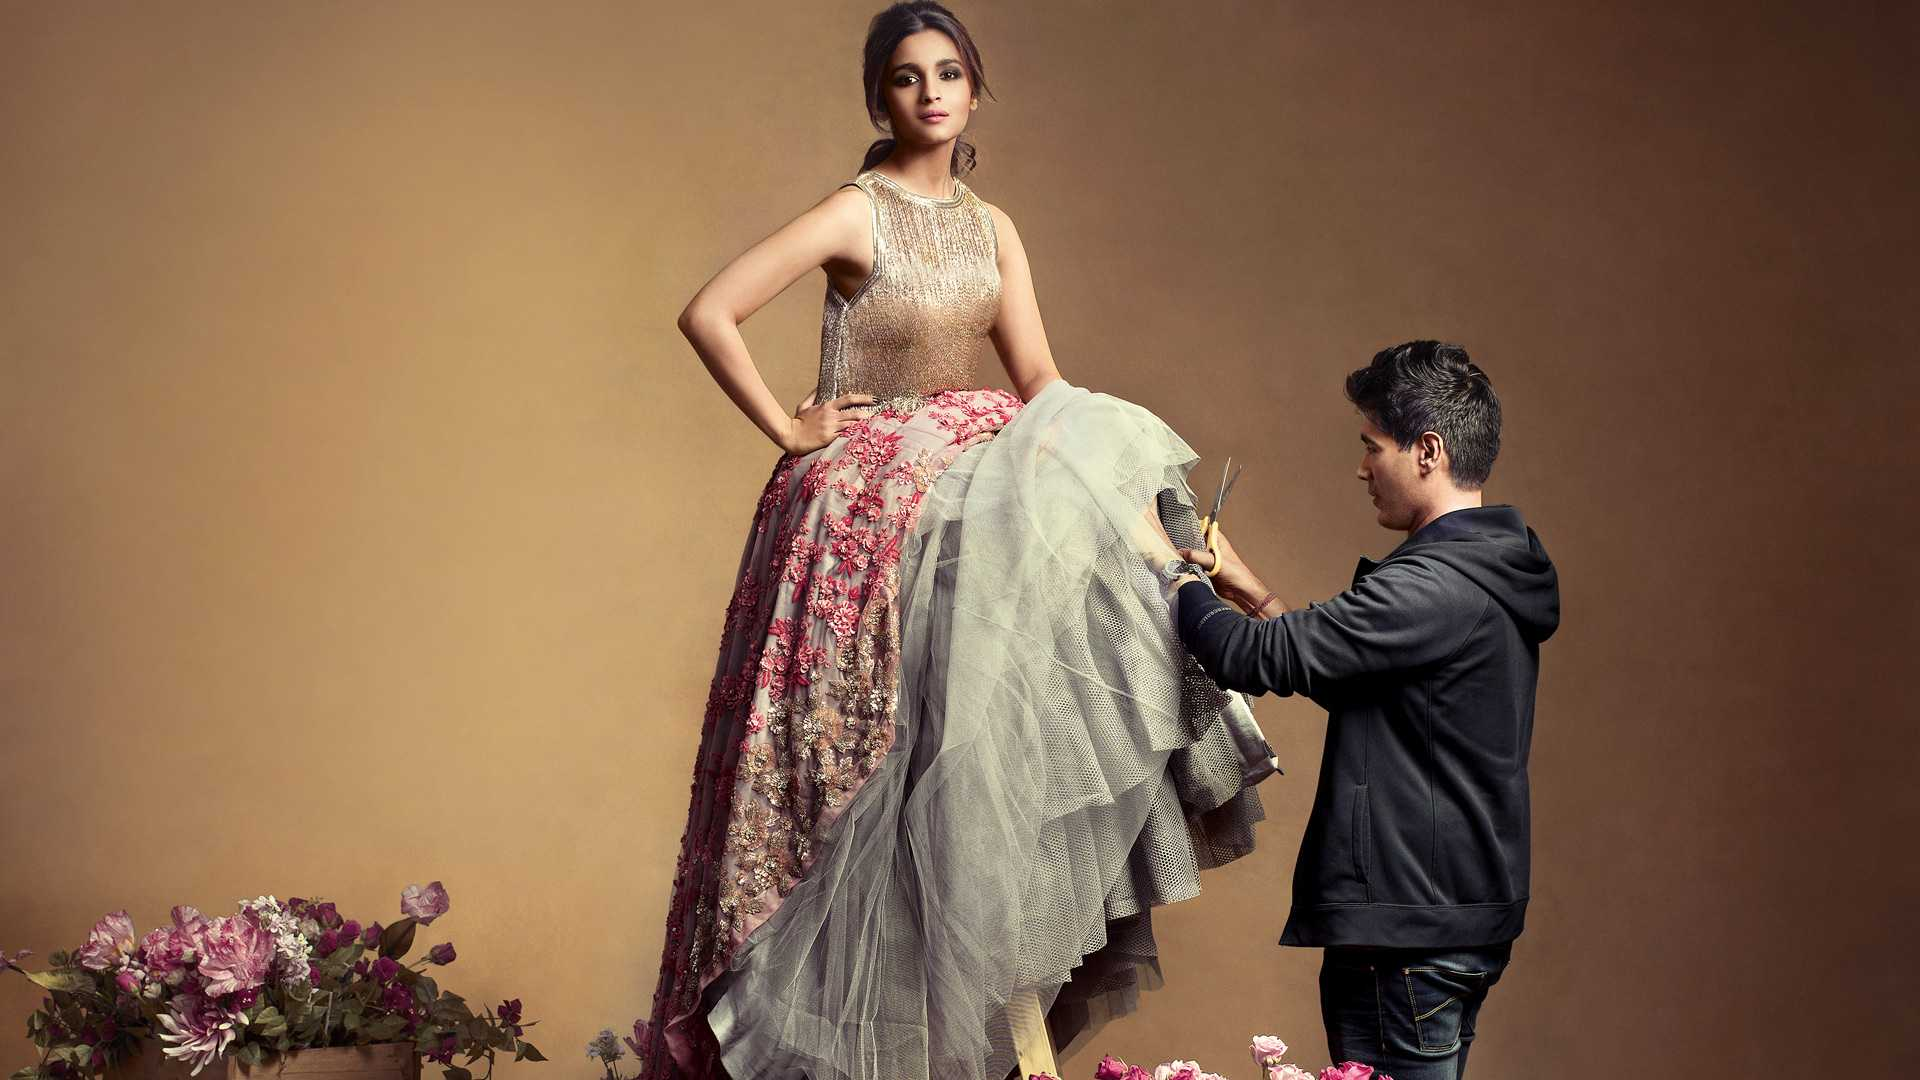 Gallery:Some Manish Malhotra Inspiration From The Other Side Of The Border